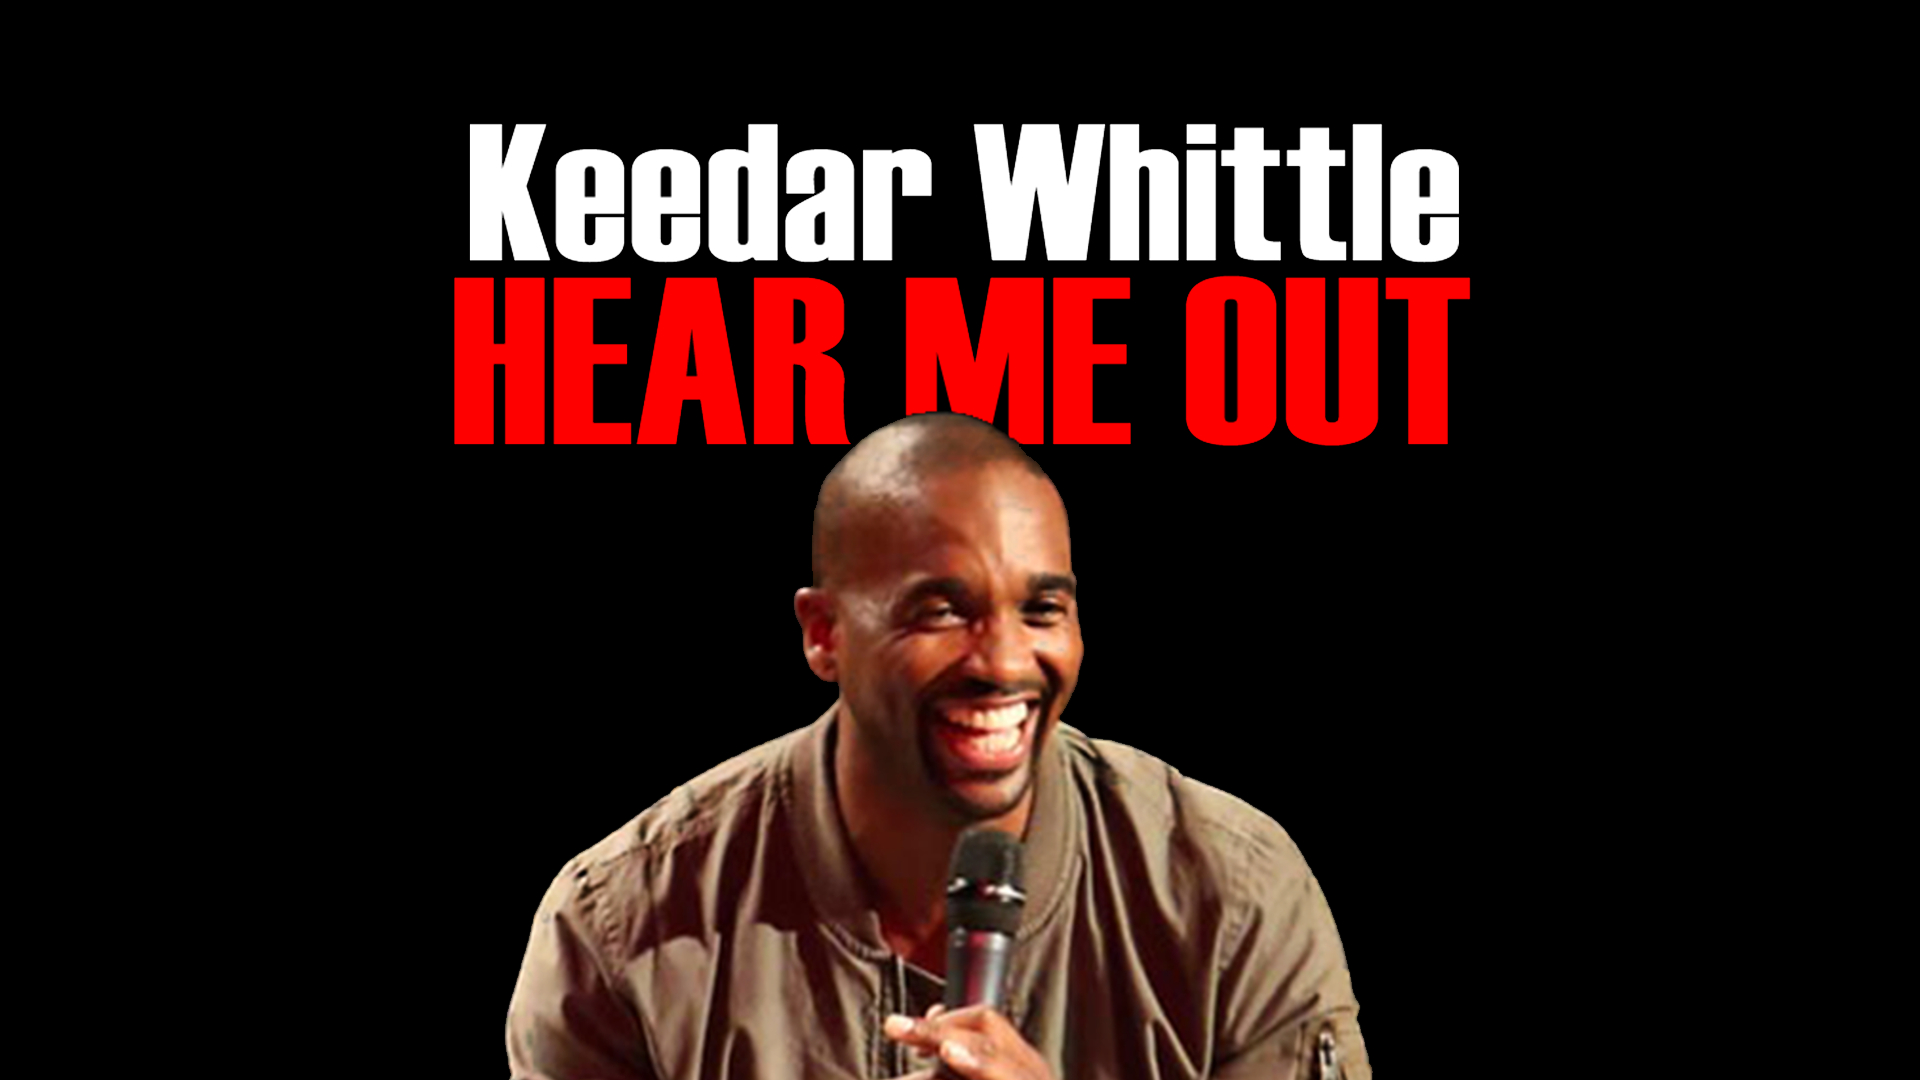 Keedar Whittle: Hear Me Out